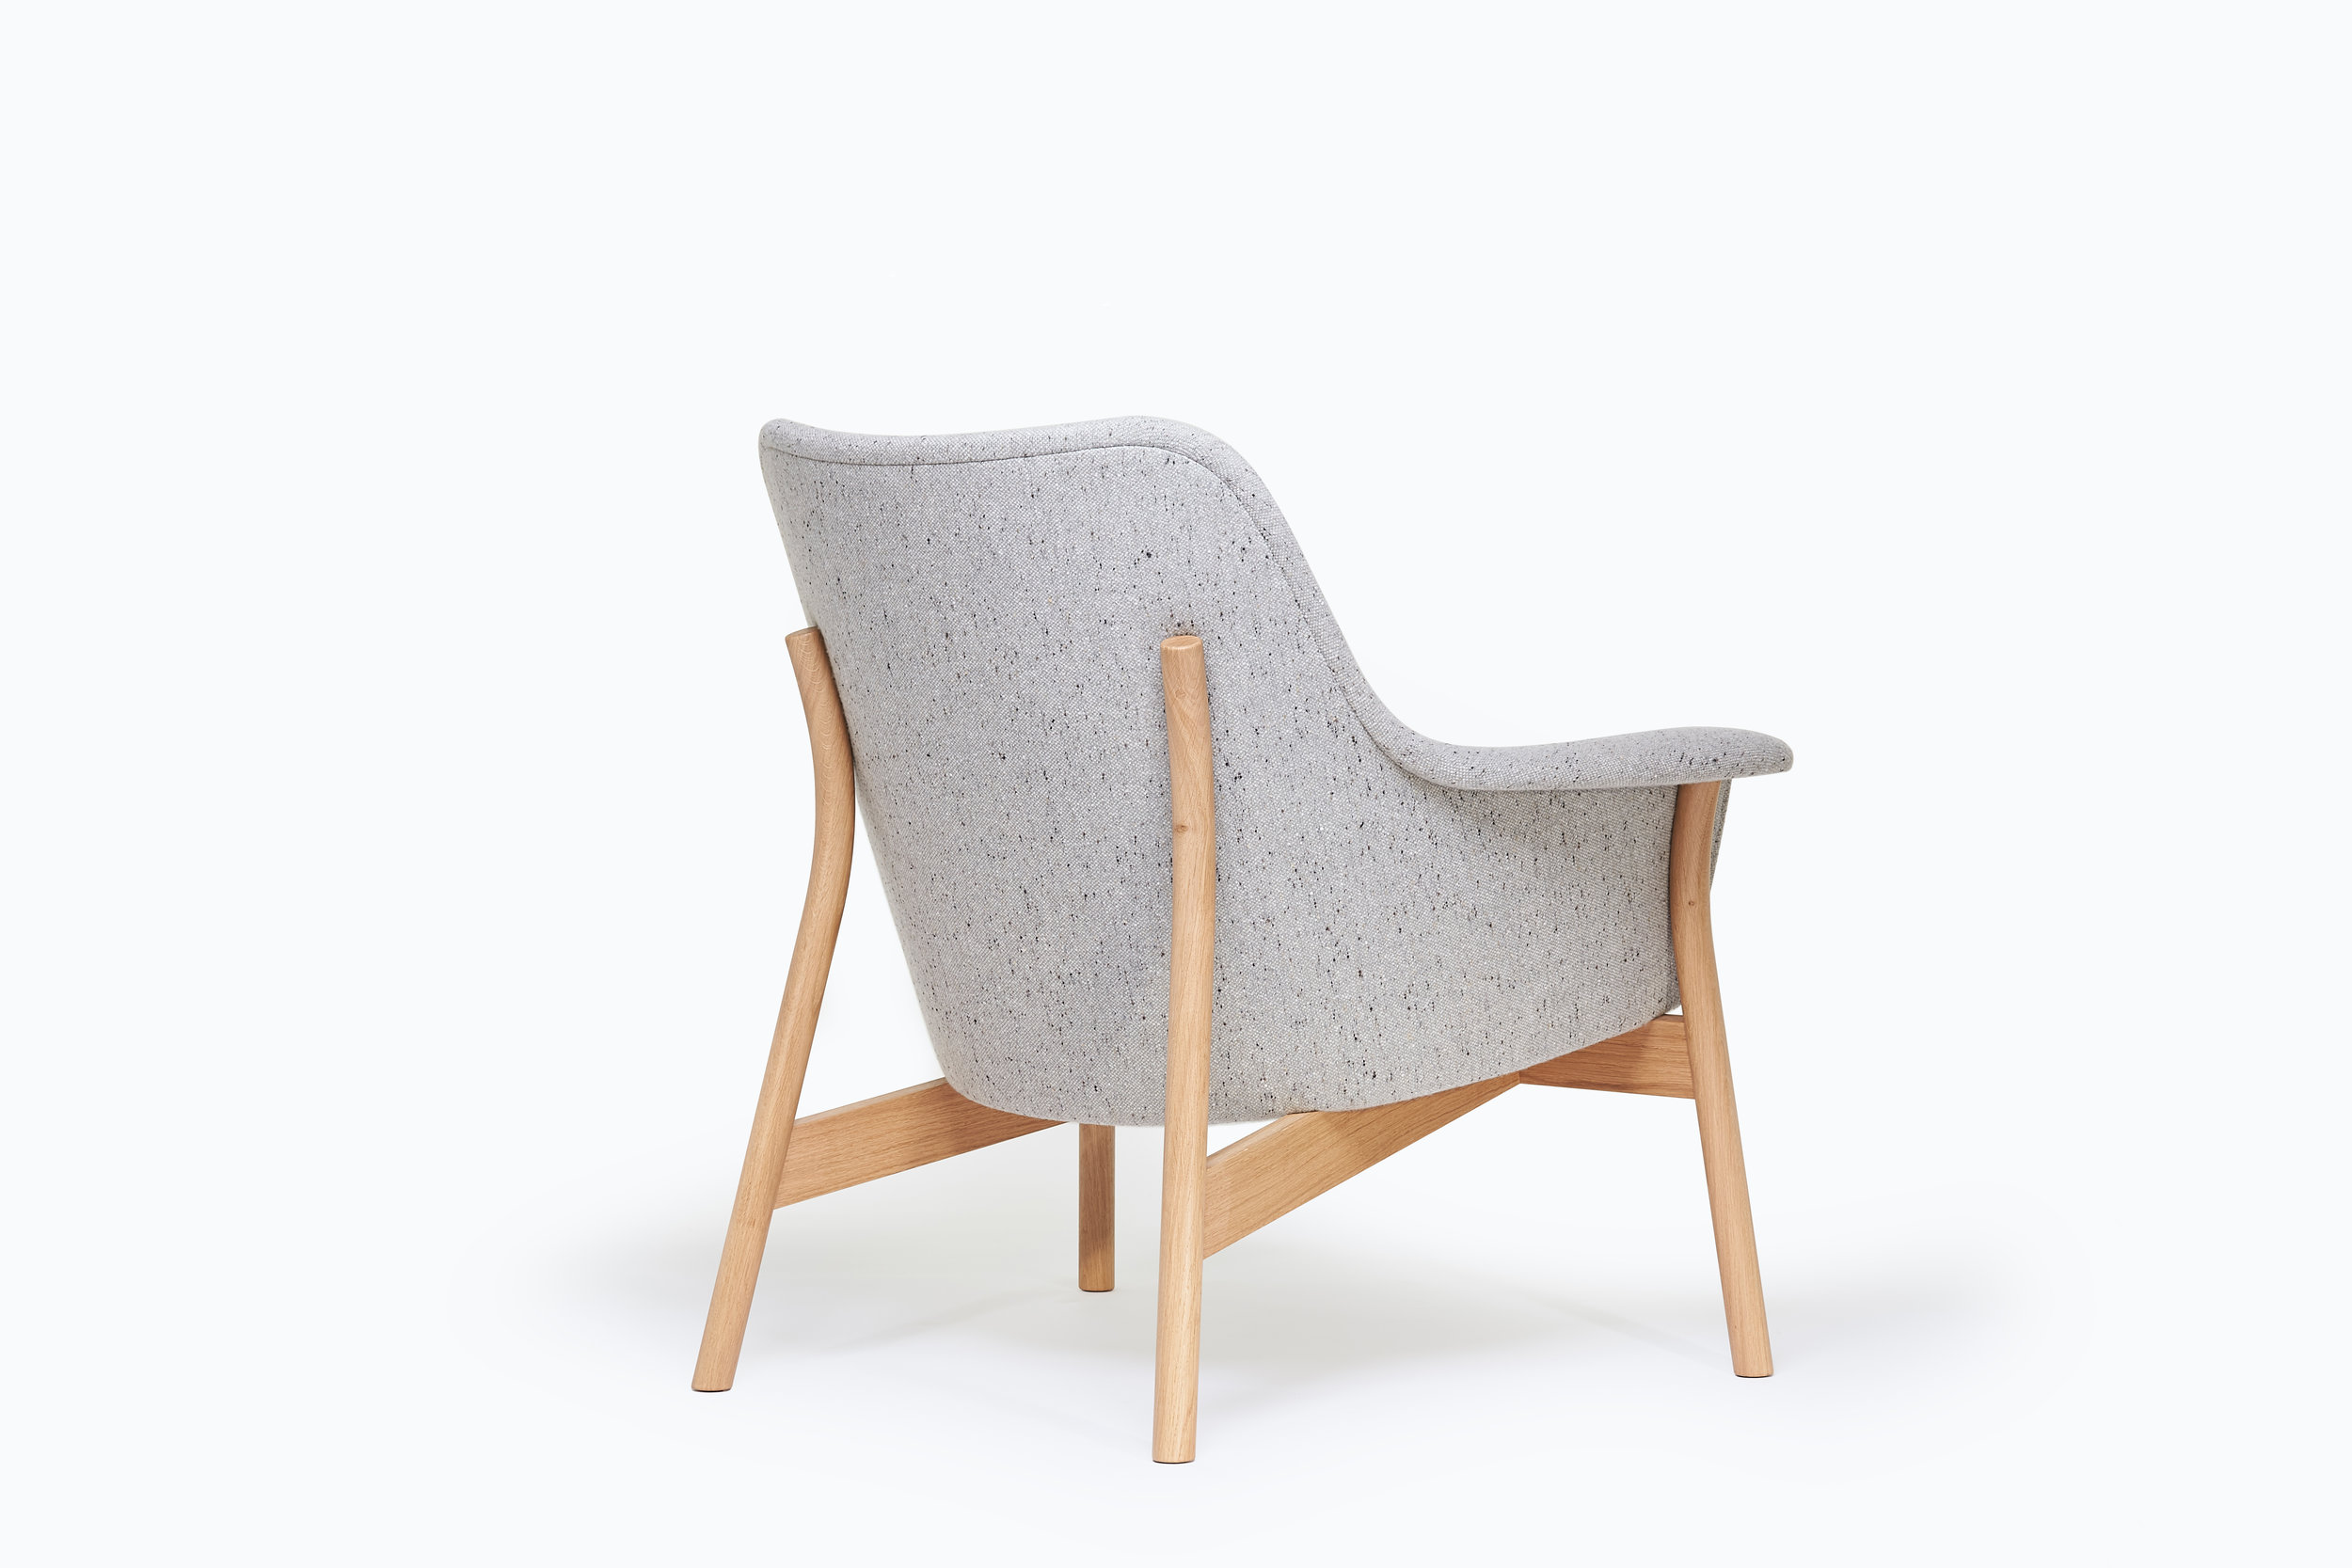 back view of oak and upholstered lounge chair